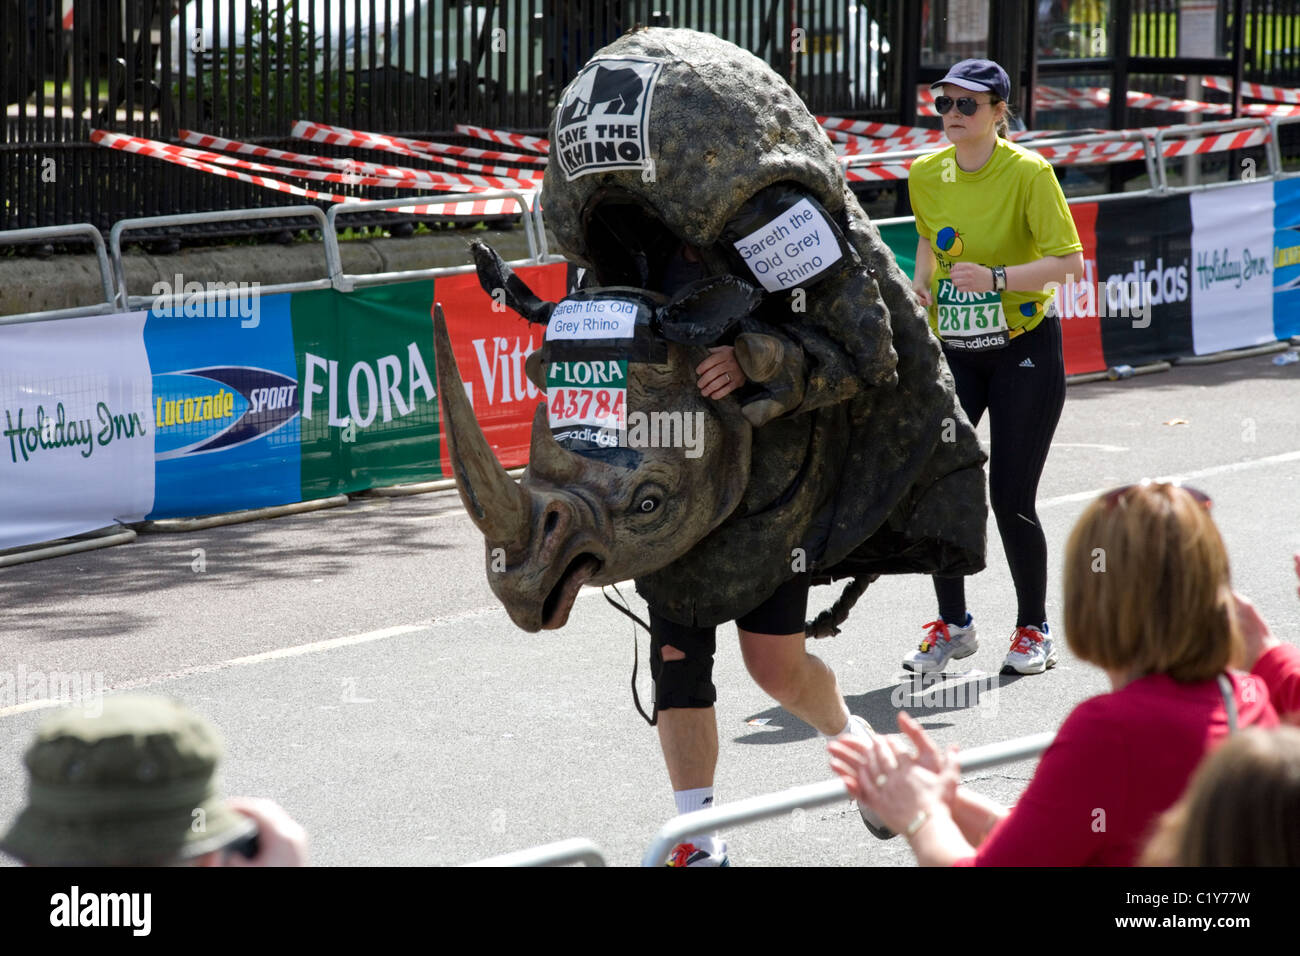 Mann in Rhino Kostüm laufen in den London-marathon Stockbild